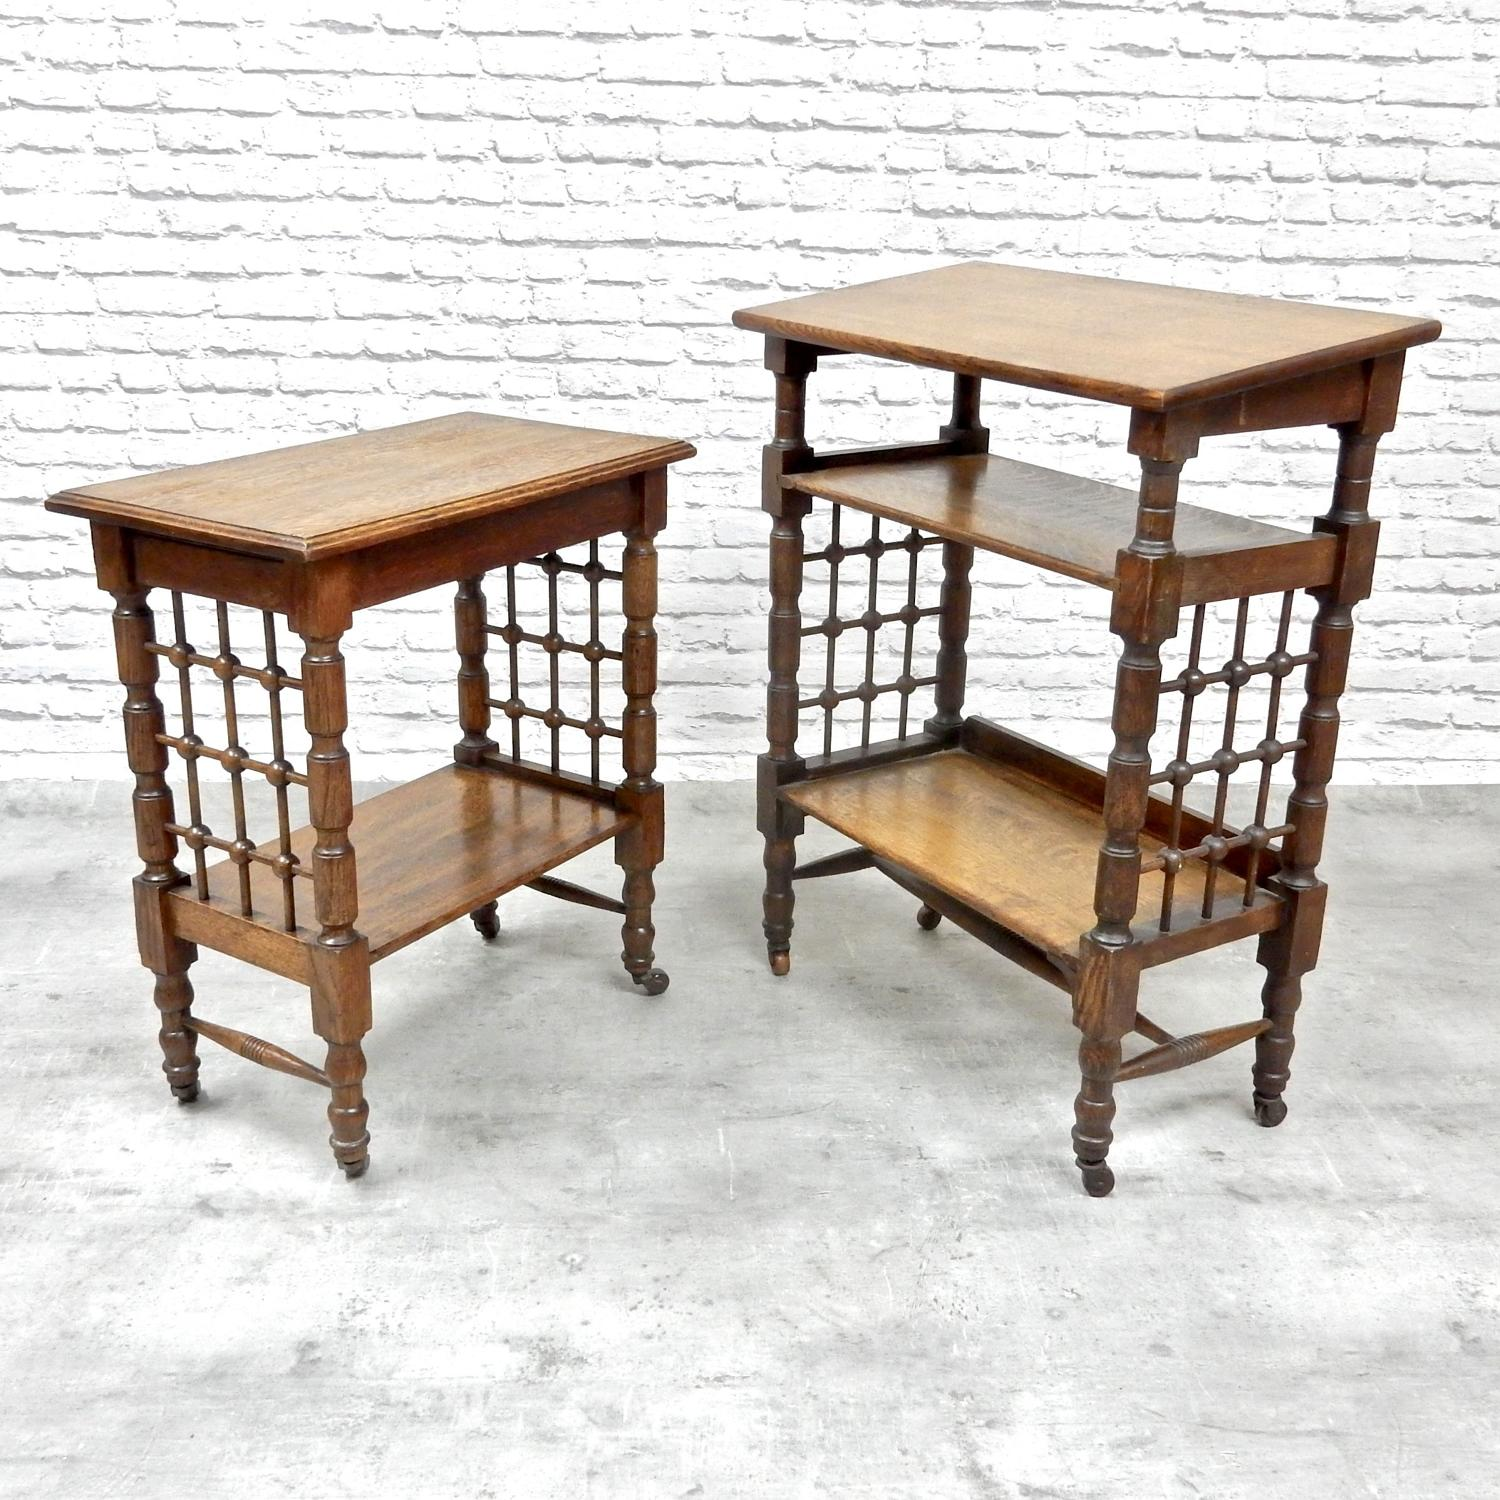 2x Oak Bookstands for Liberty Co